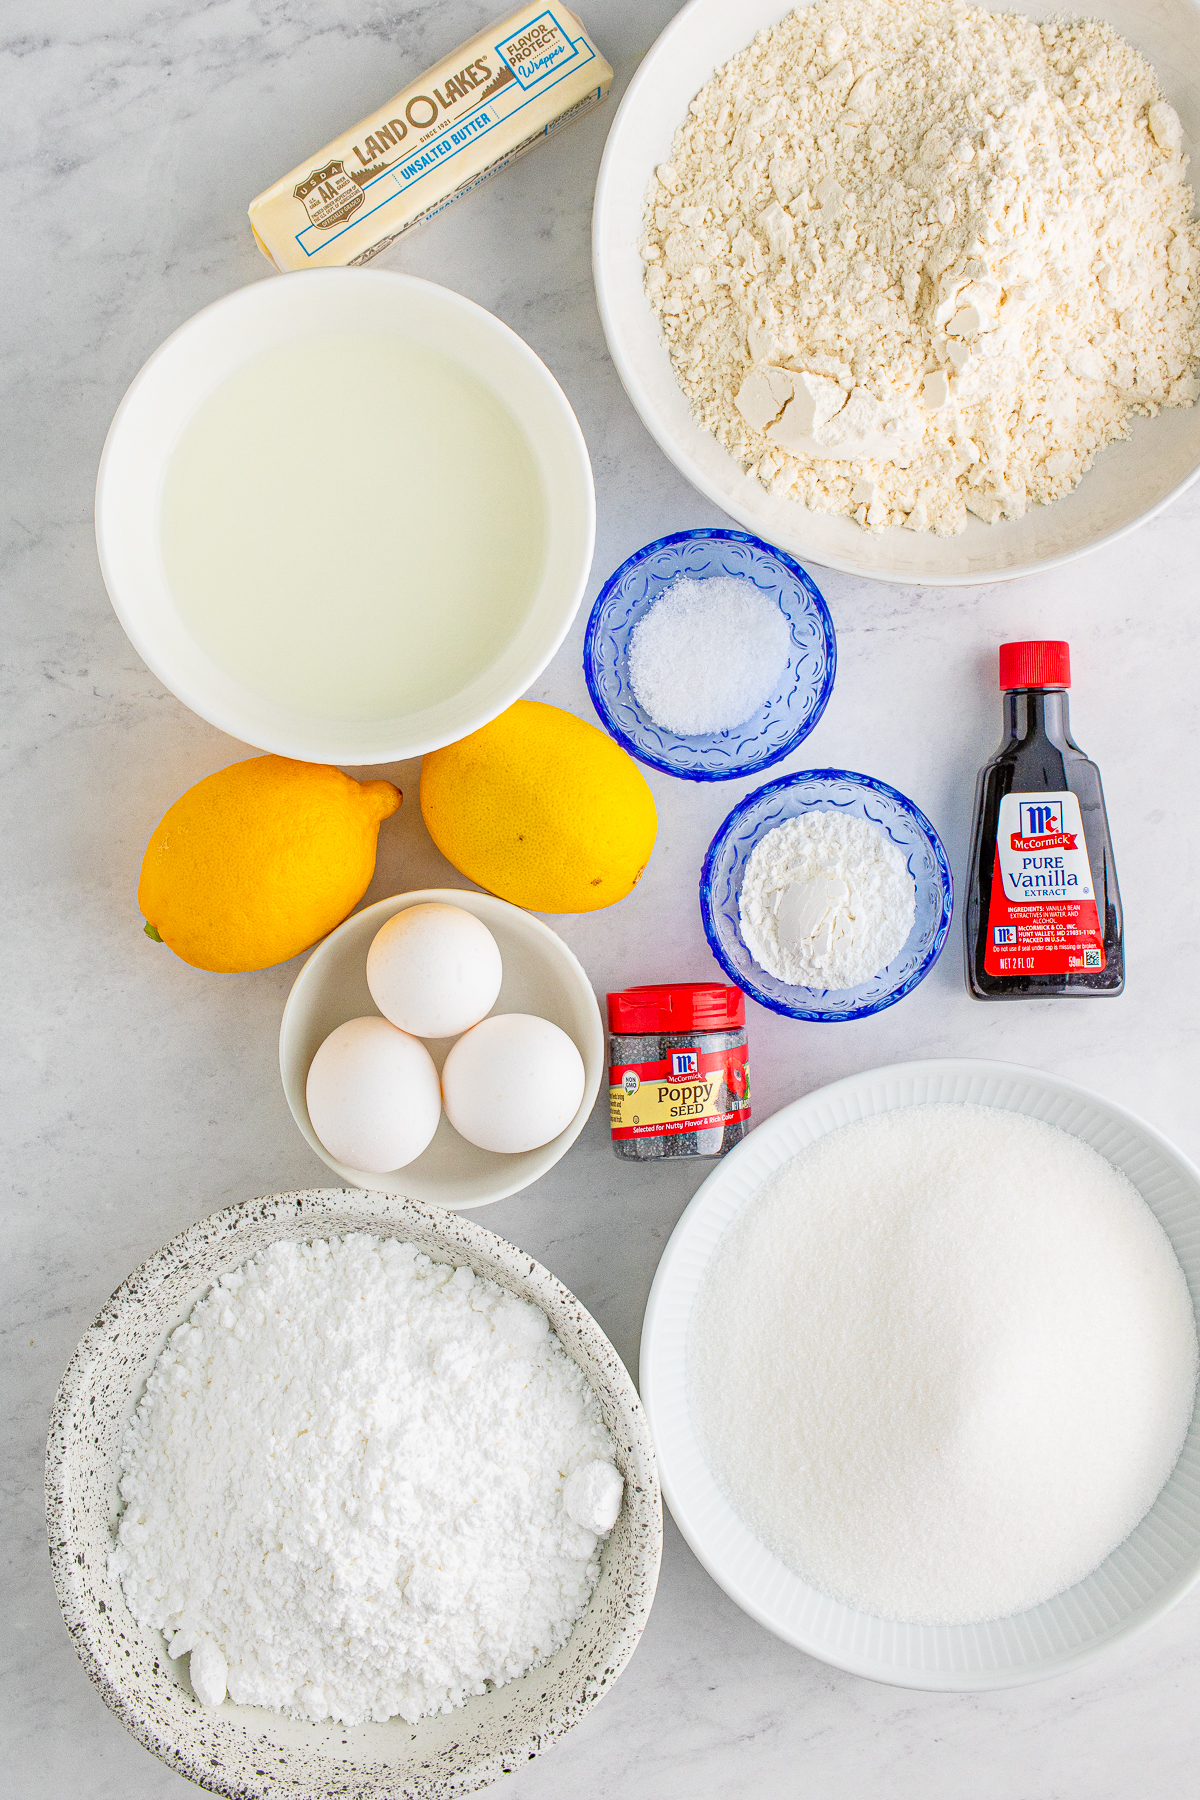 Ingredients needed to make a Lemon Poppy Seed Cake